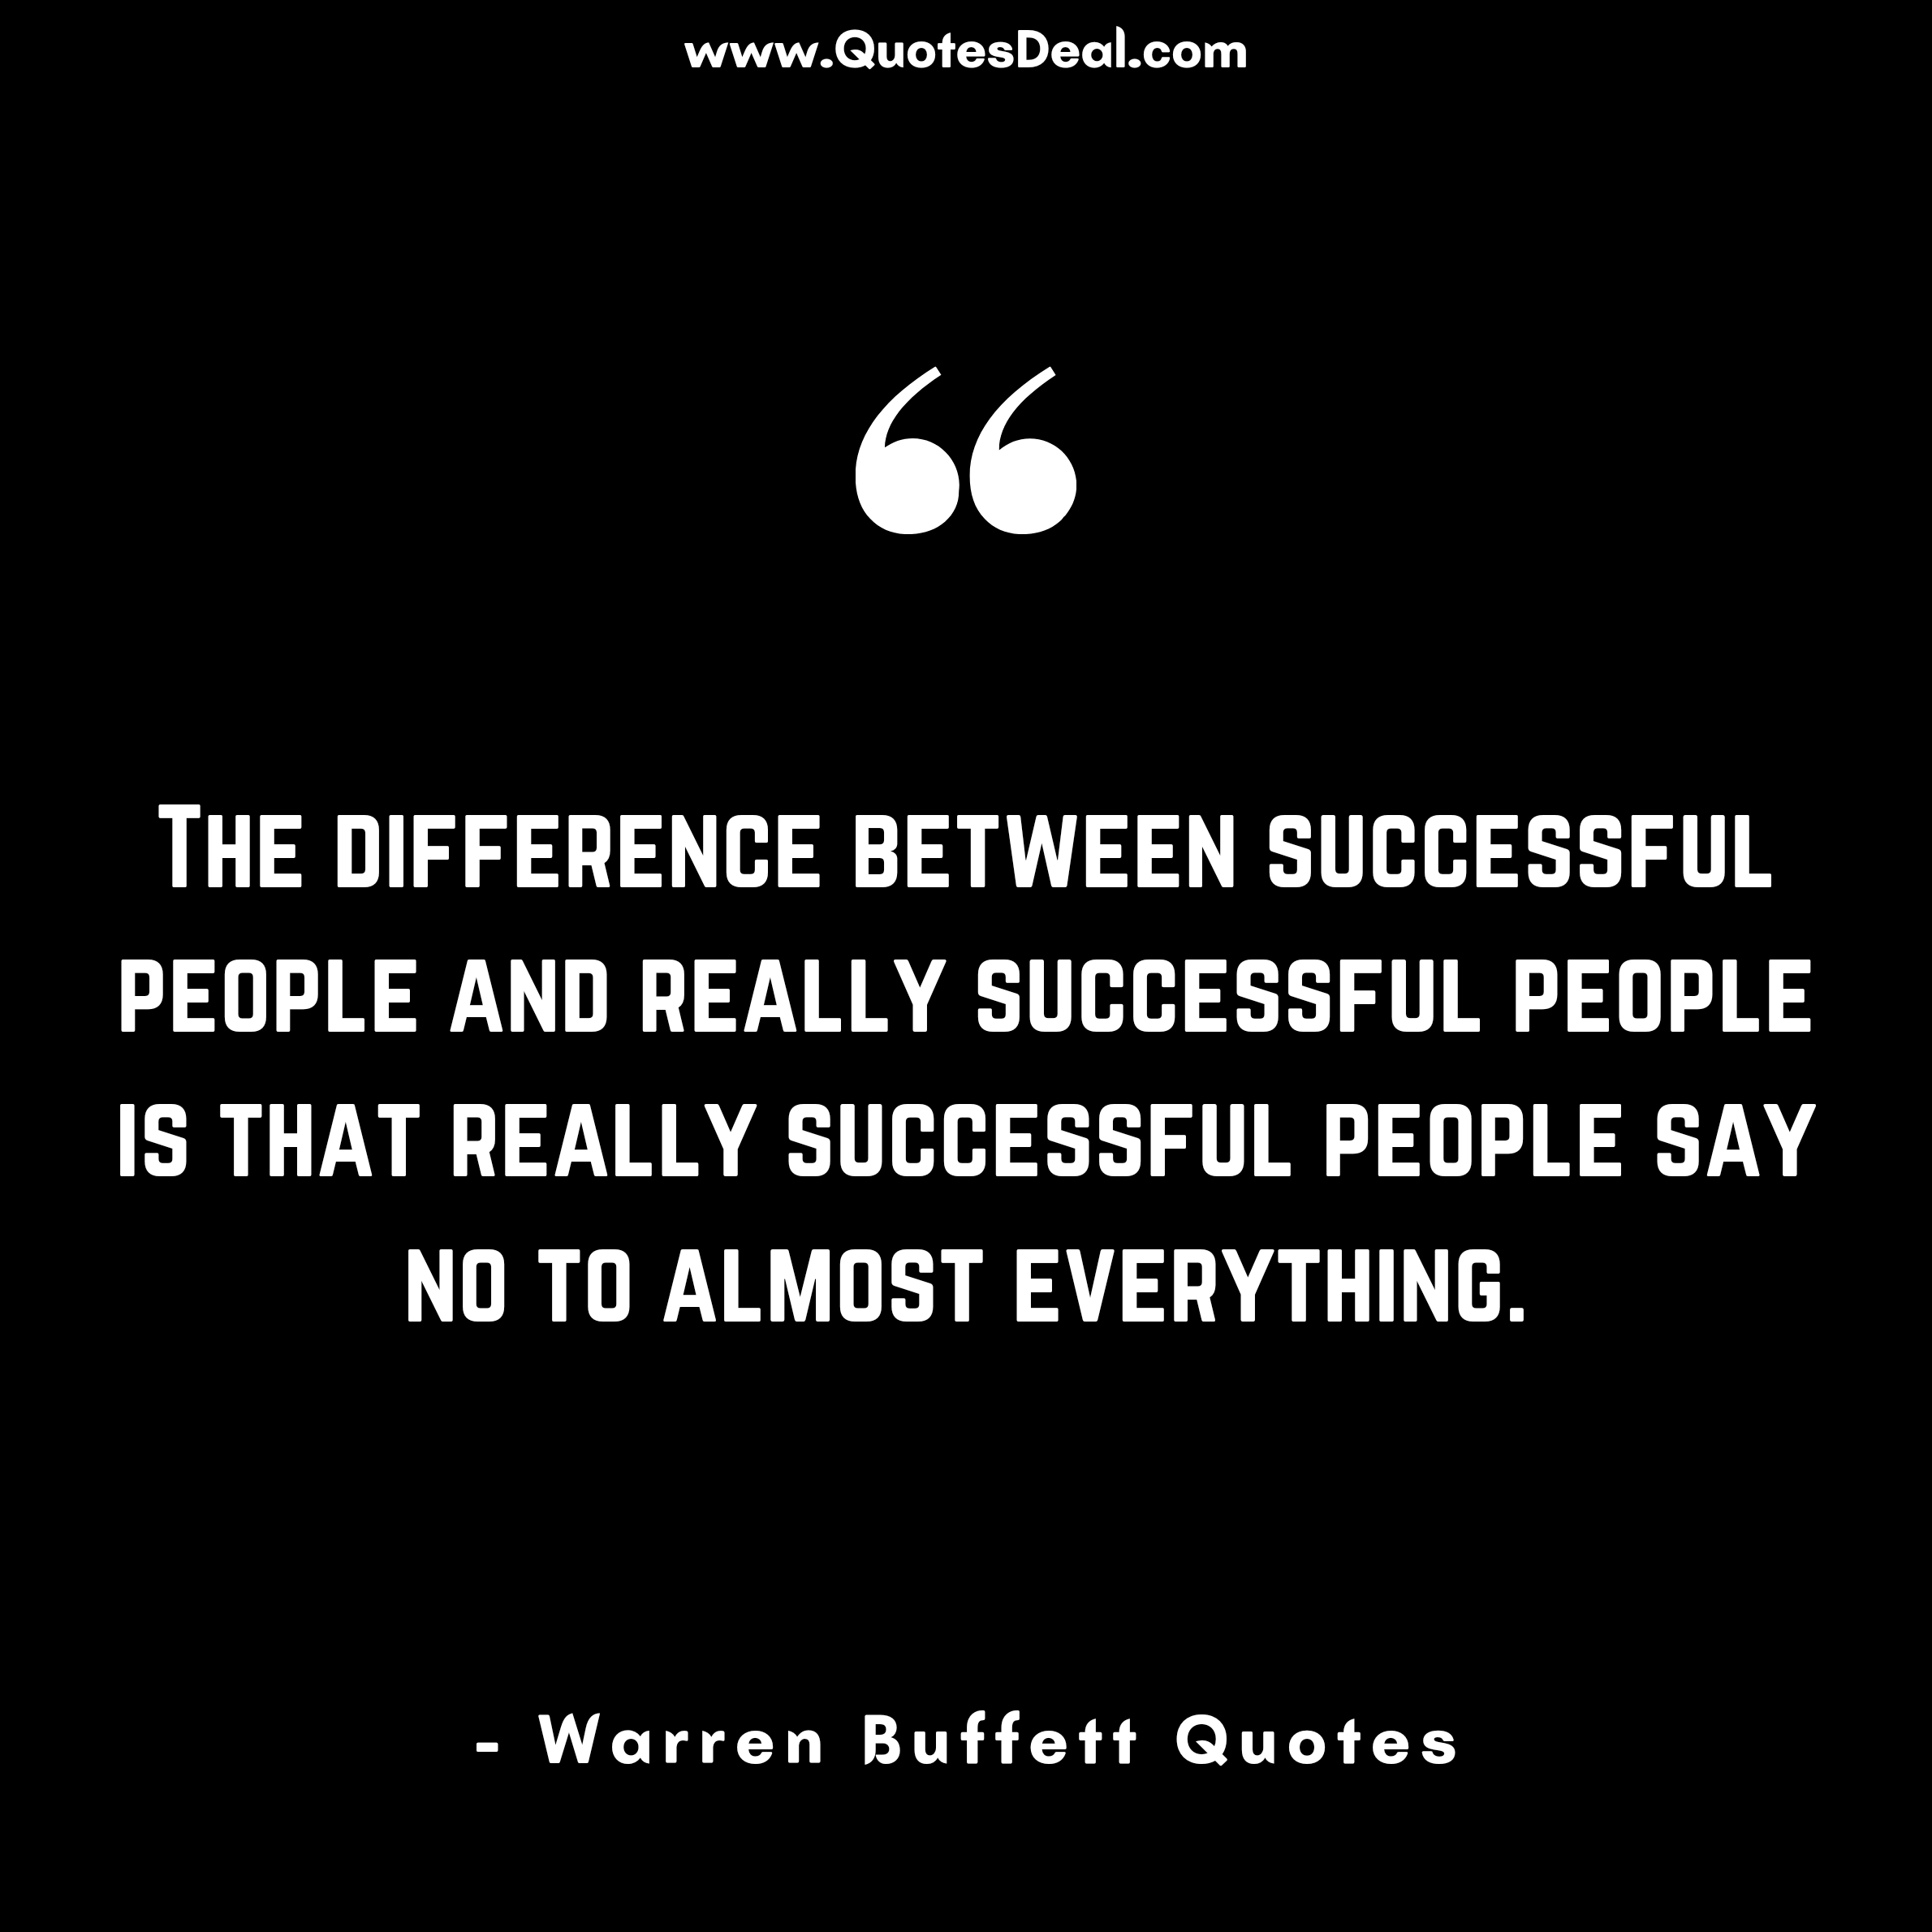 The difference between successful people